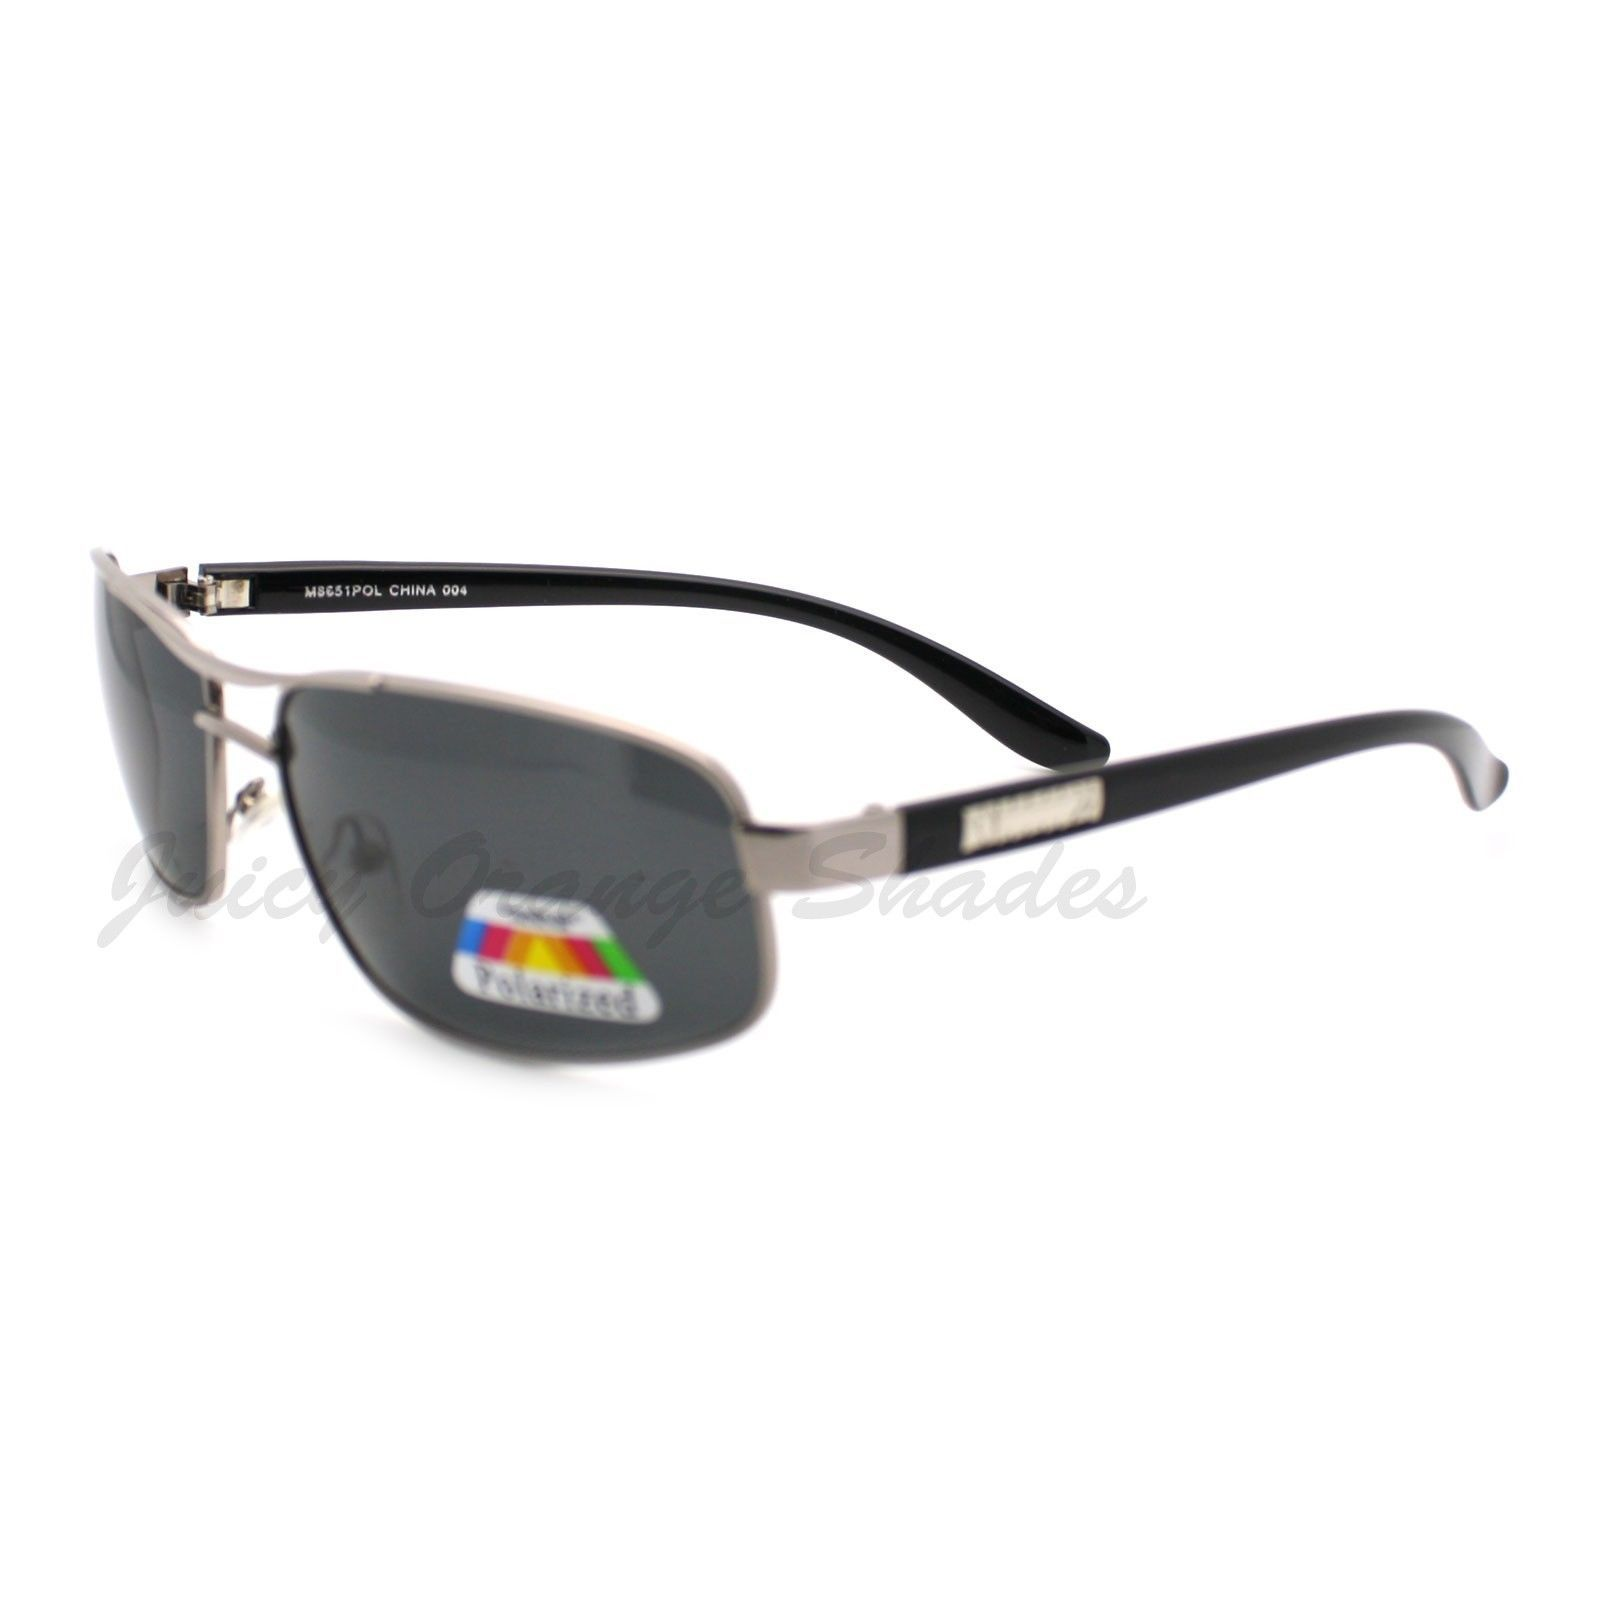 Polarized Lens Sunglasses Men's Oval Rectangular Fashion Frame